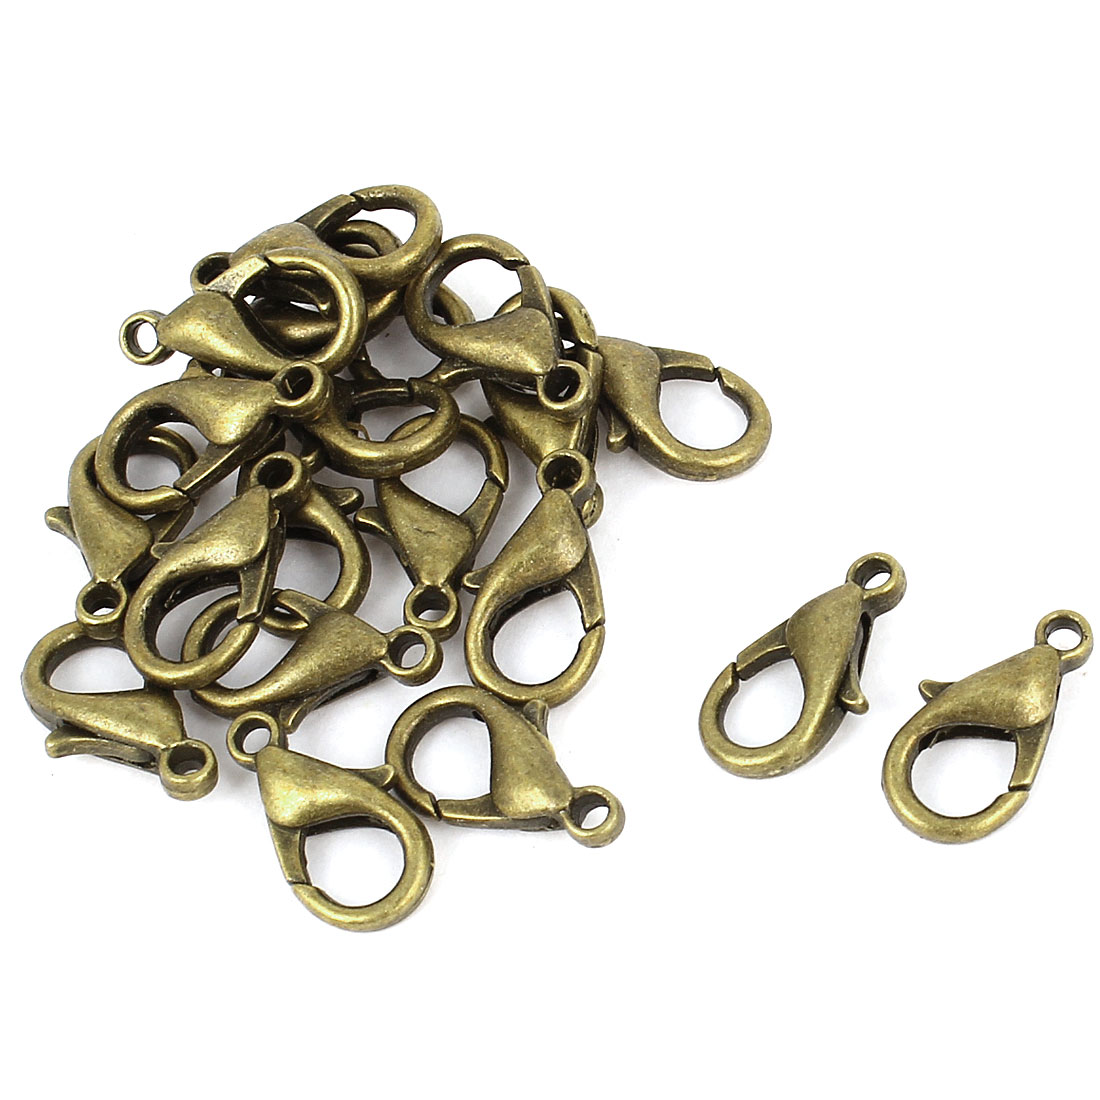 20 Pcs Bronze Tone Lobster Claw Clasps Jewelry Findings 14x7mm